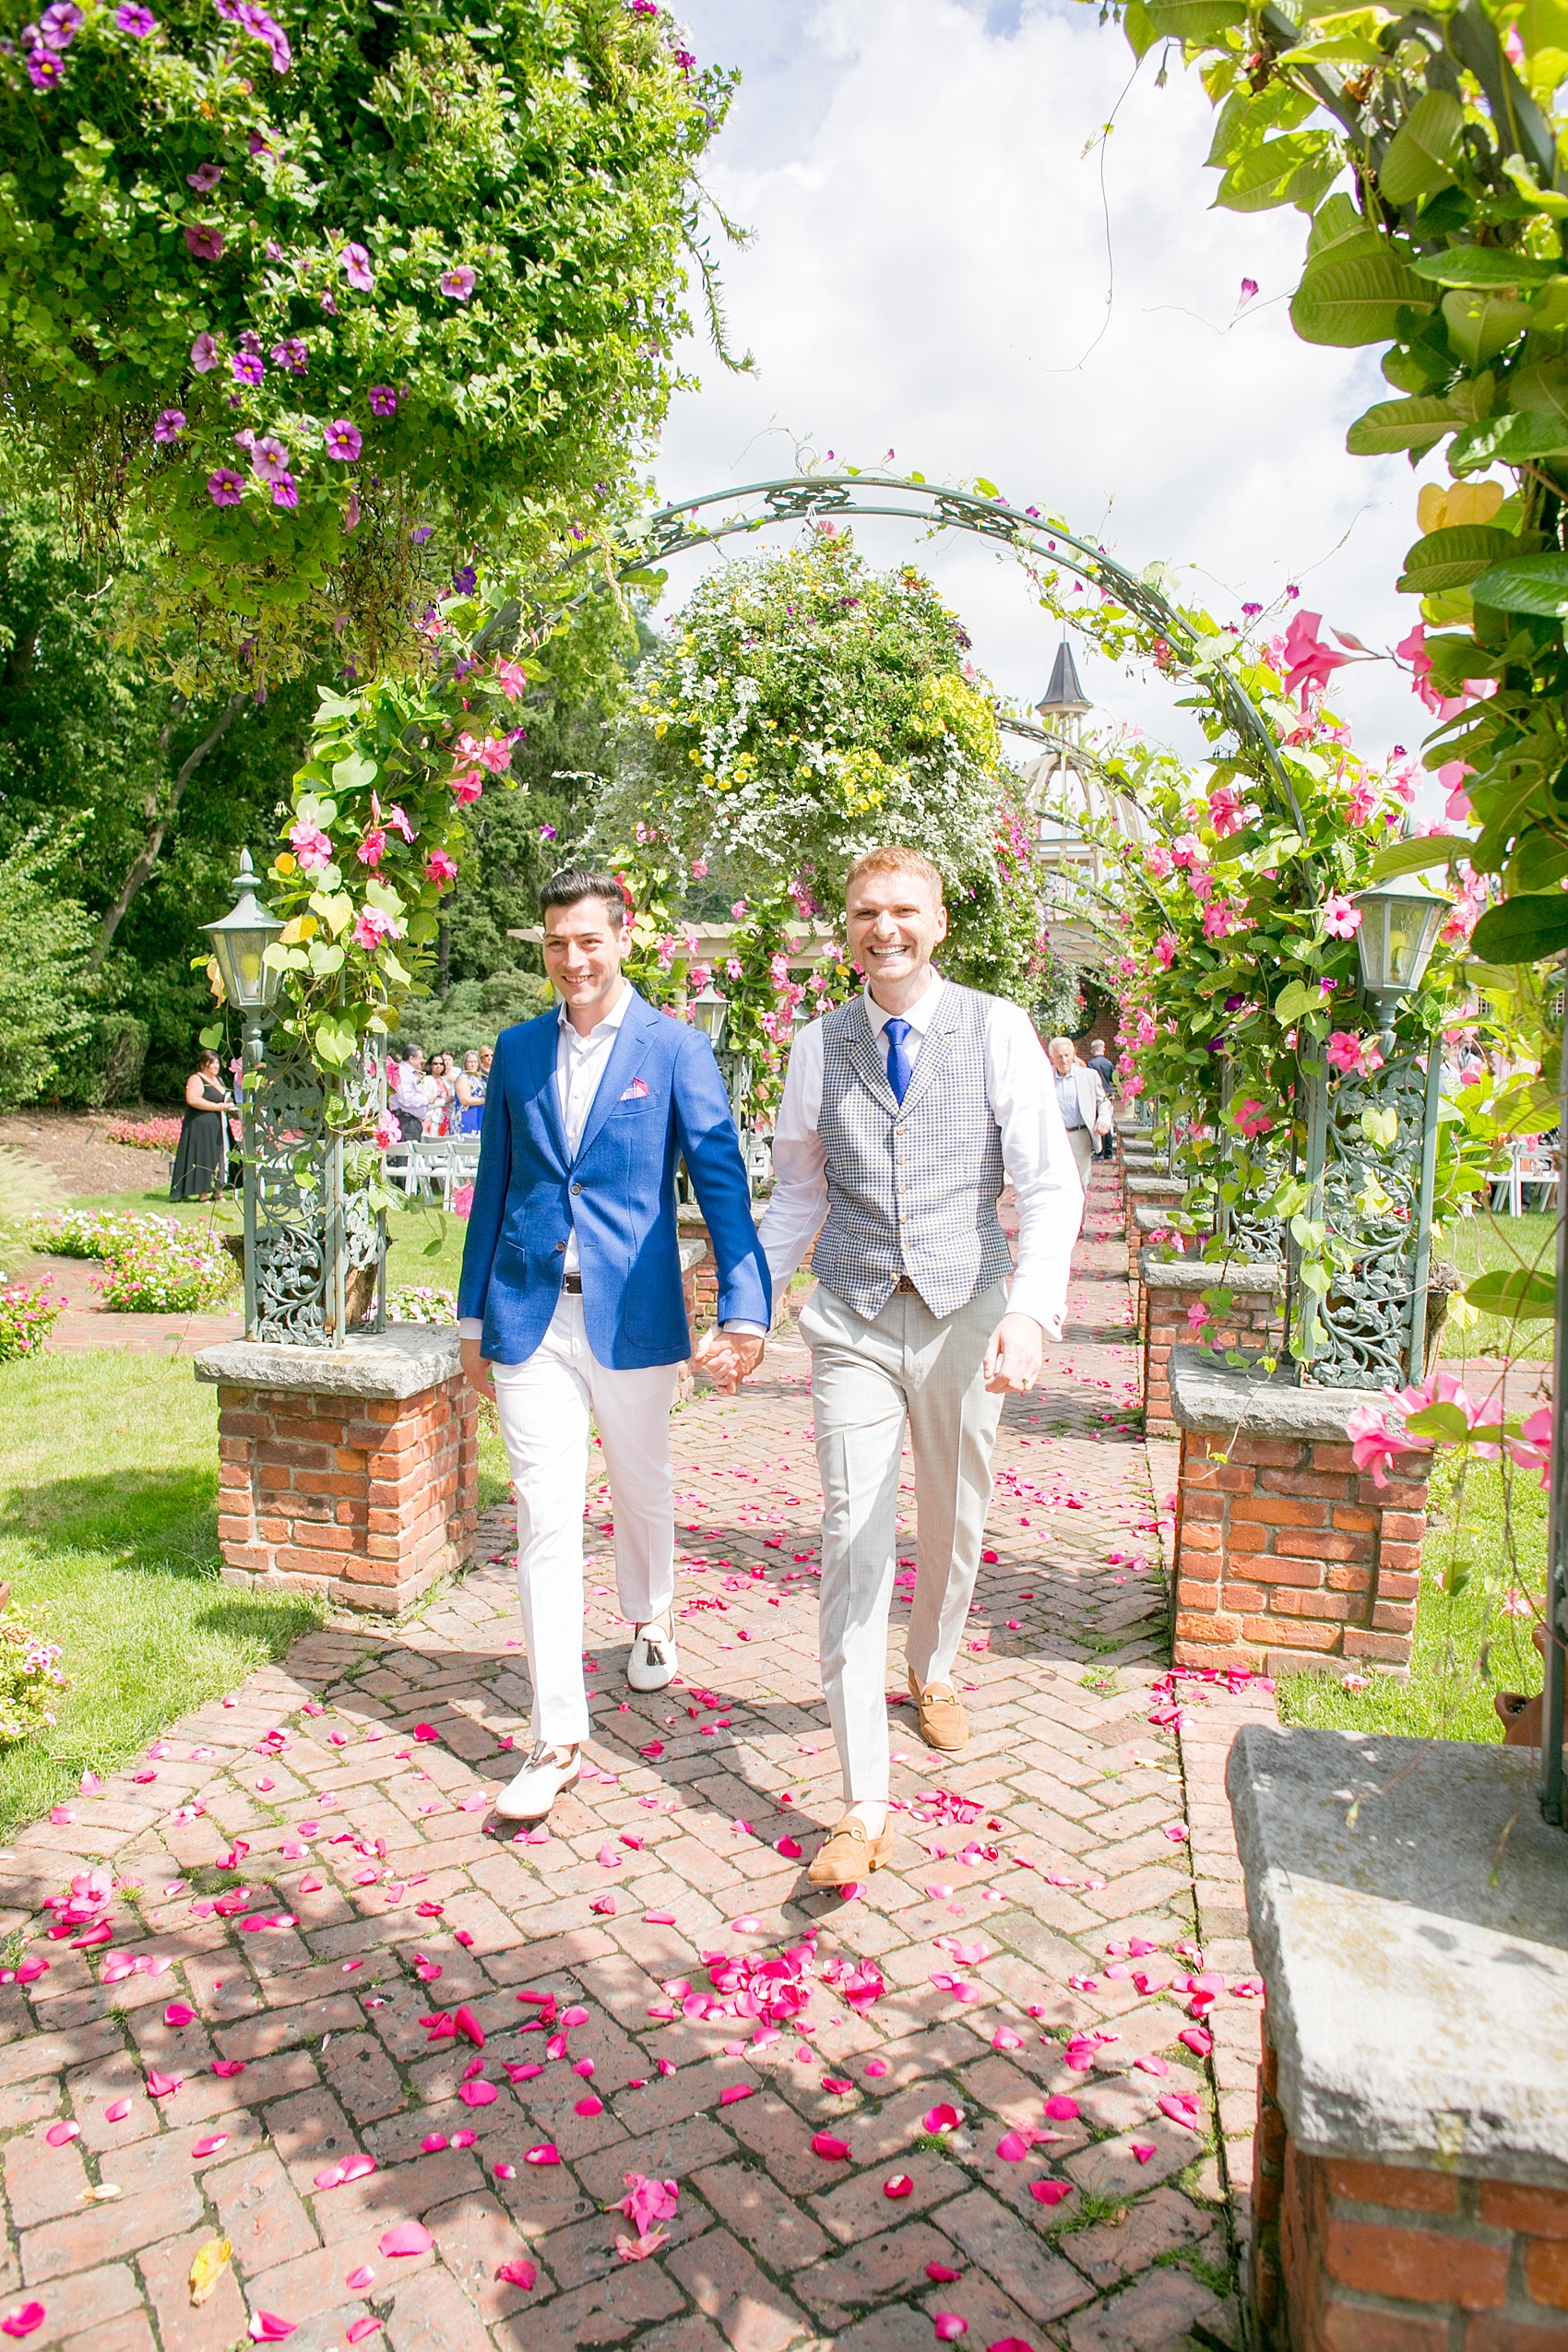 Mikkel Paige Photography photos of a gay wedding at The Manor in West Orange, NJ. The grooms walk from their outdoor summer ceremony on a rose petal carpet under live arches and greenery.